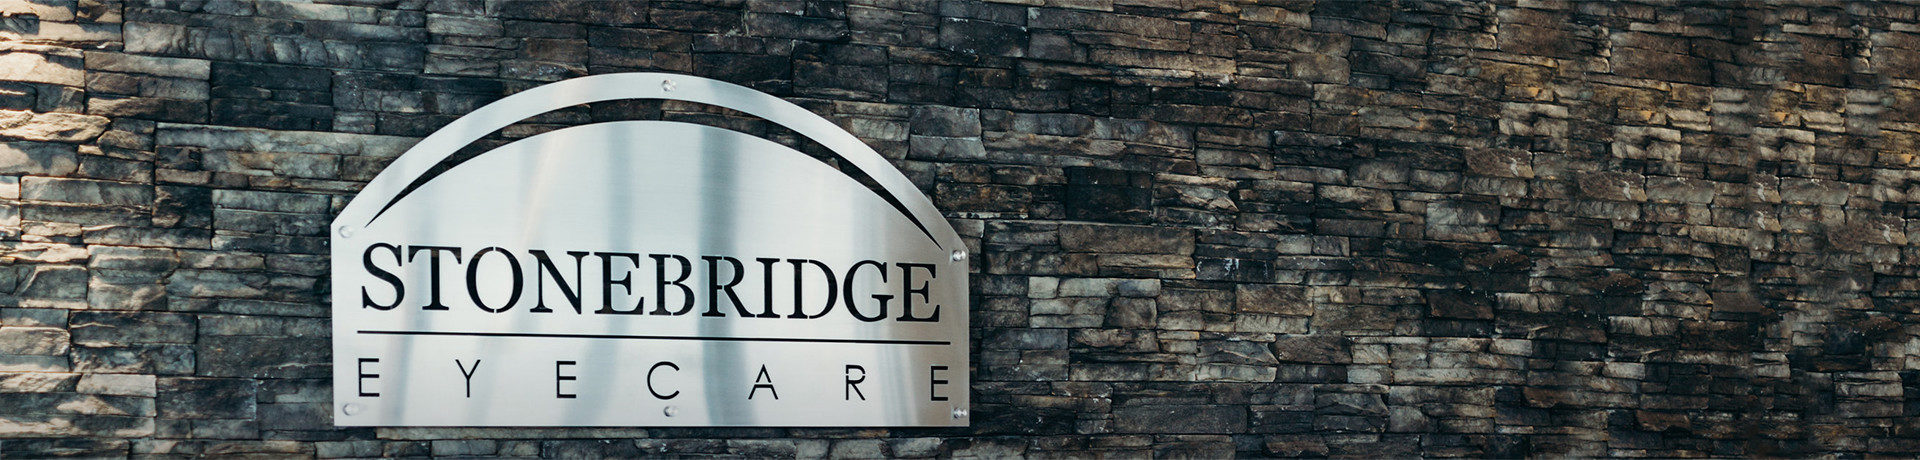 Image of Stonebridge Eyecare Sign